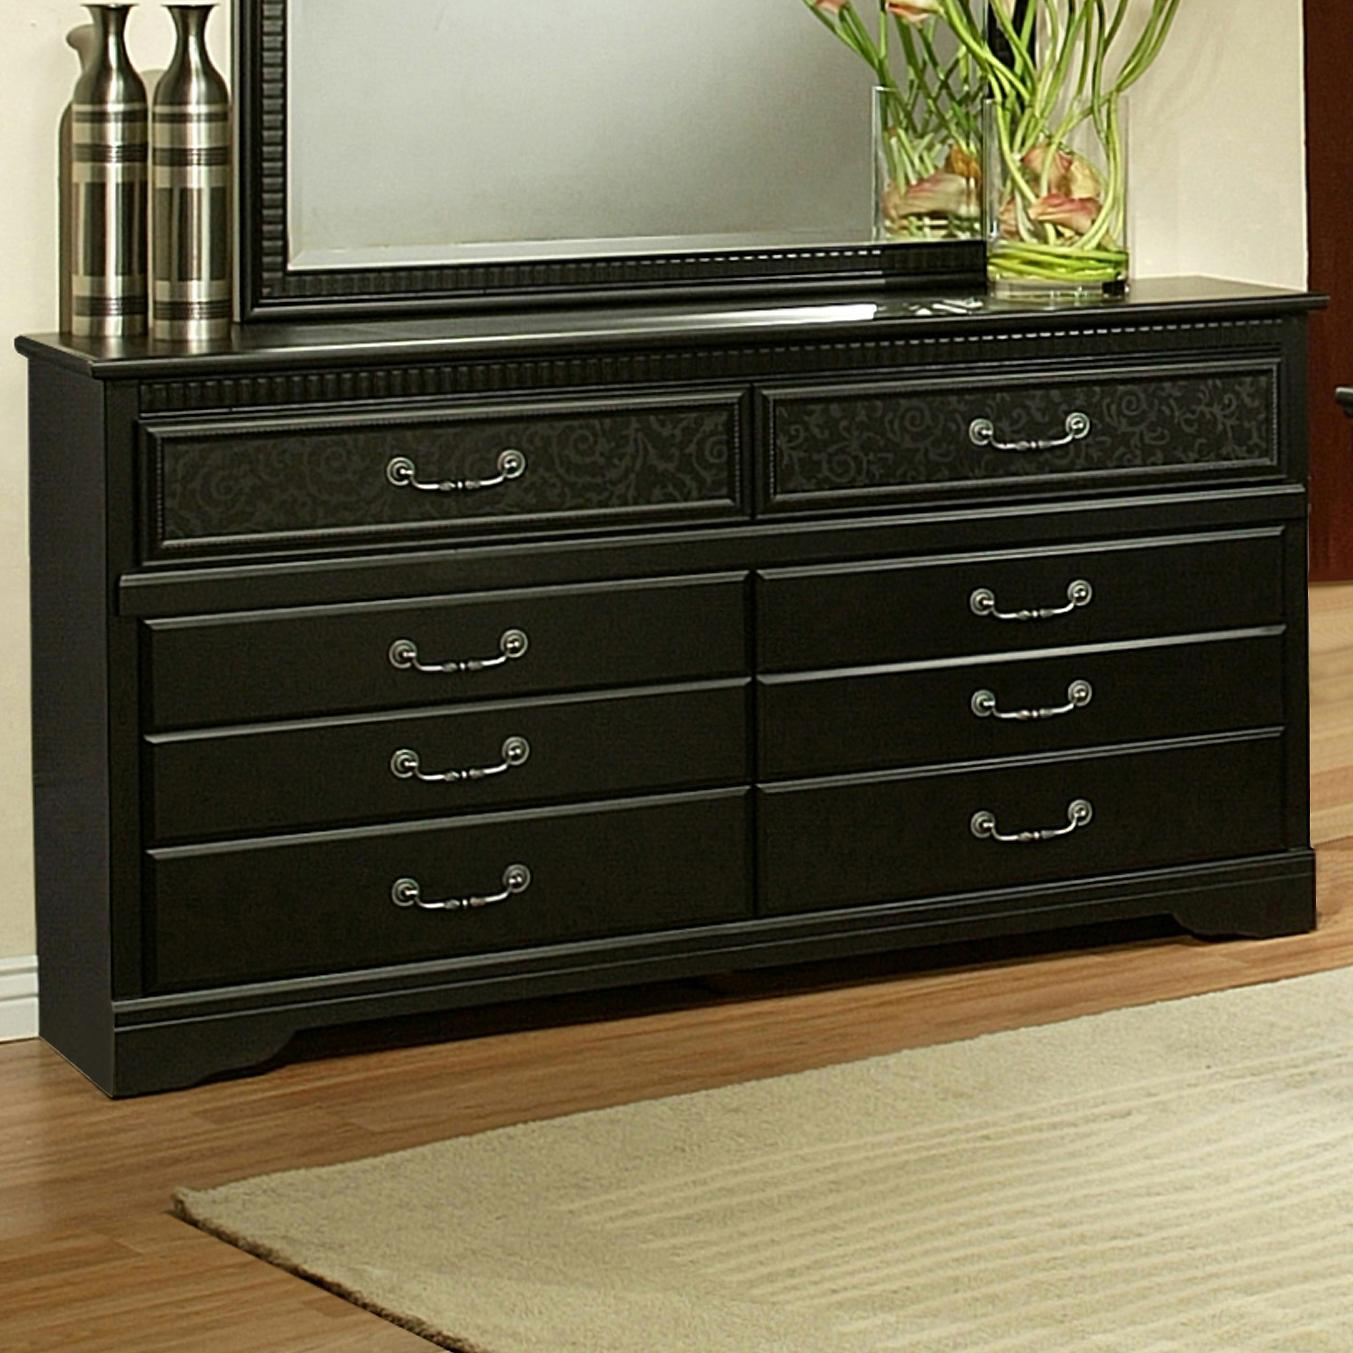 Sandberg Furniture Granada  Dresser - Item Number: 34406